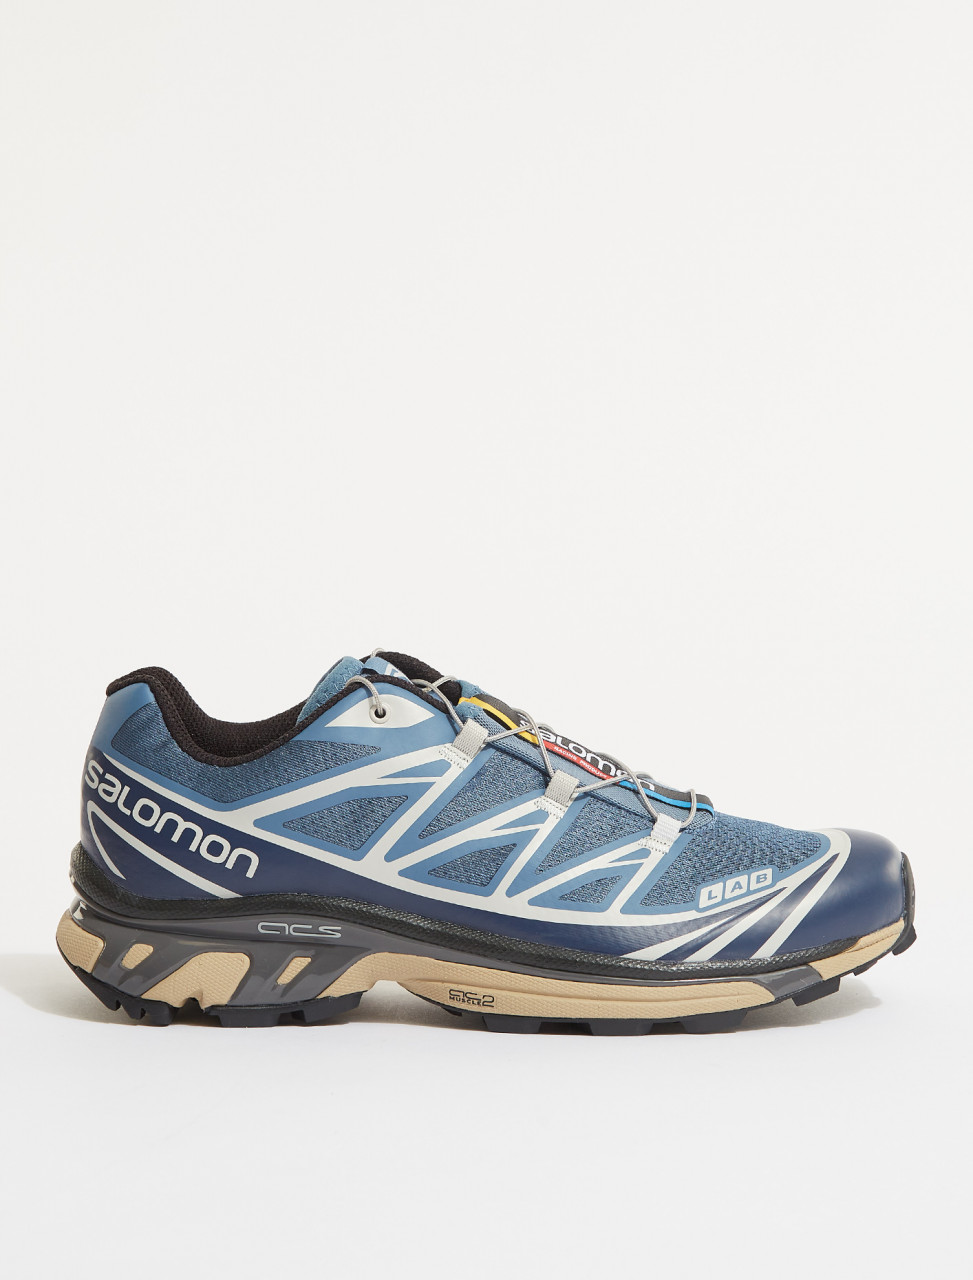 L41394900 SALOMON XT 6 ADVANCED COPEN BLUE MOOD INDIGO LUNAR ROCK